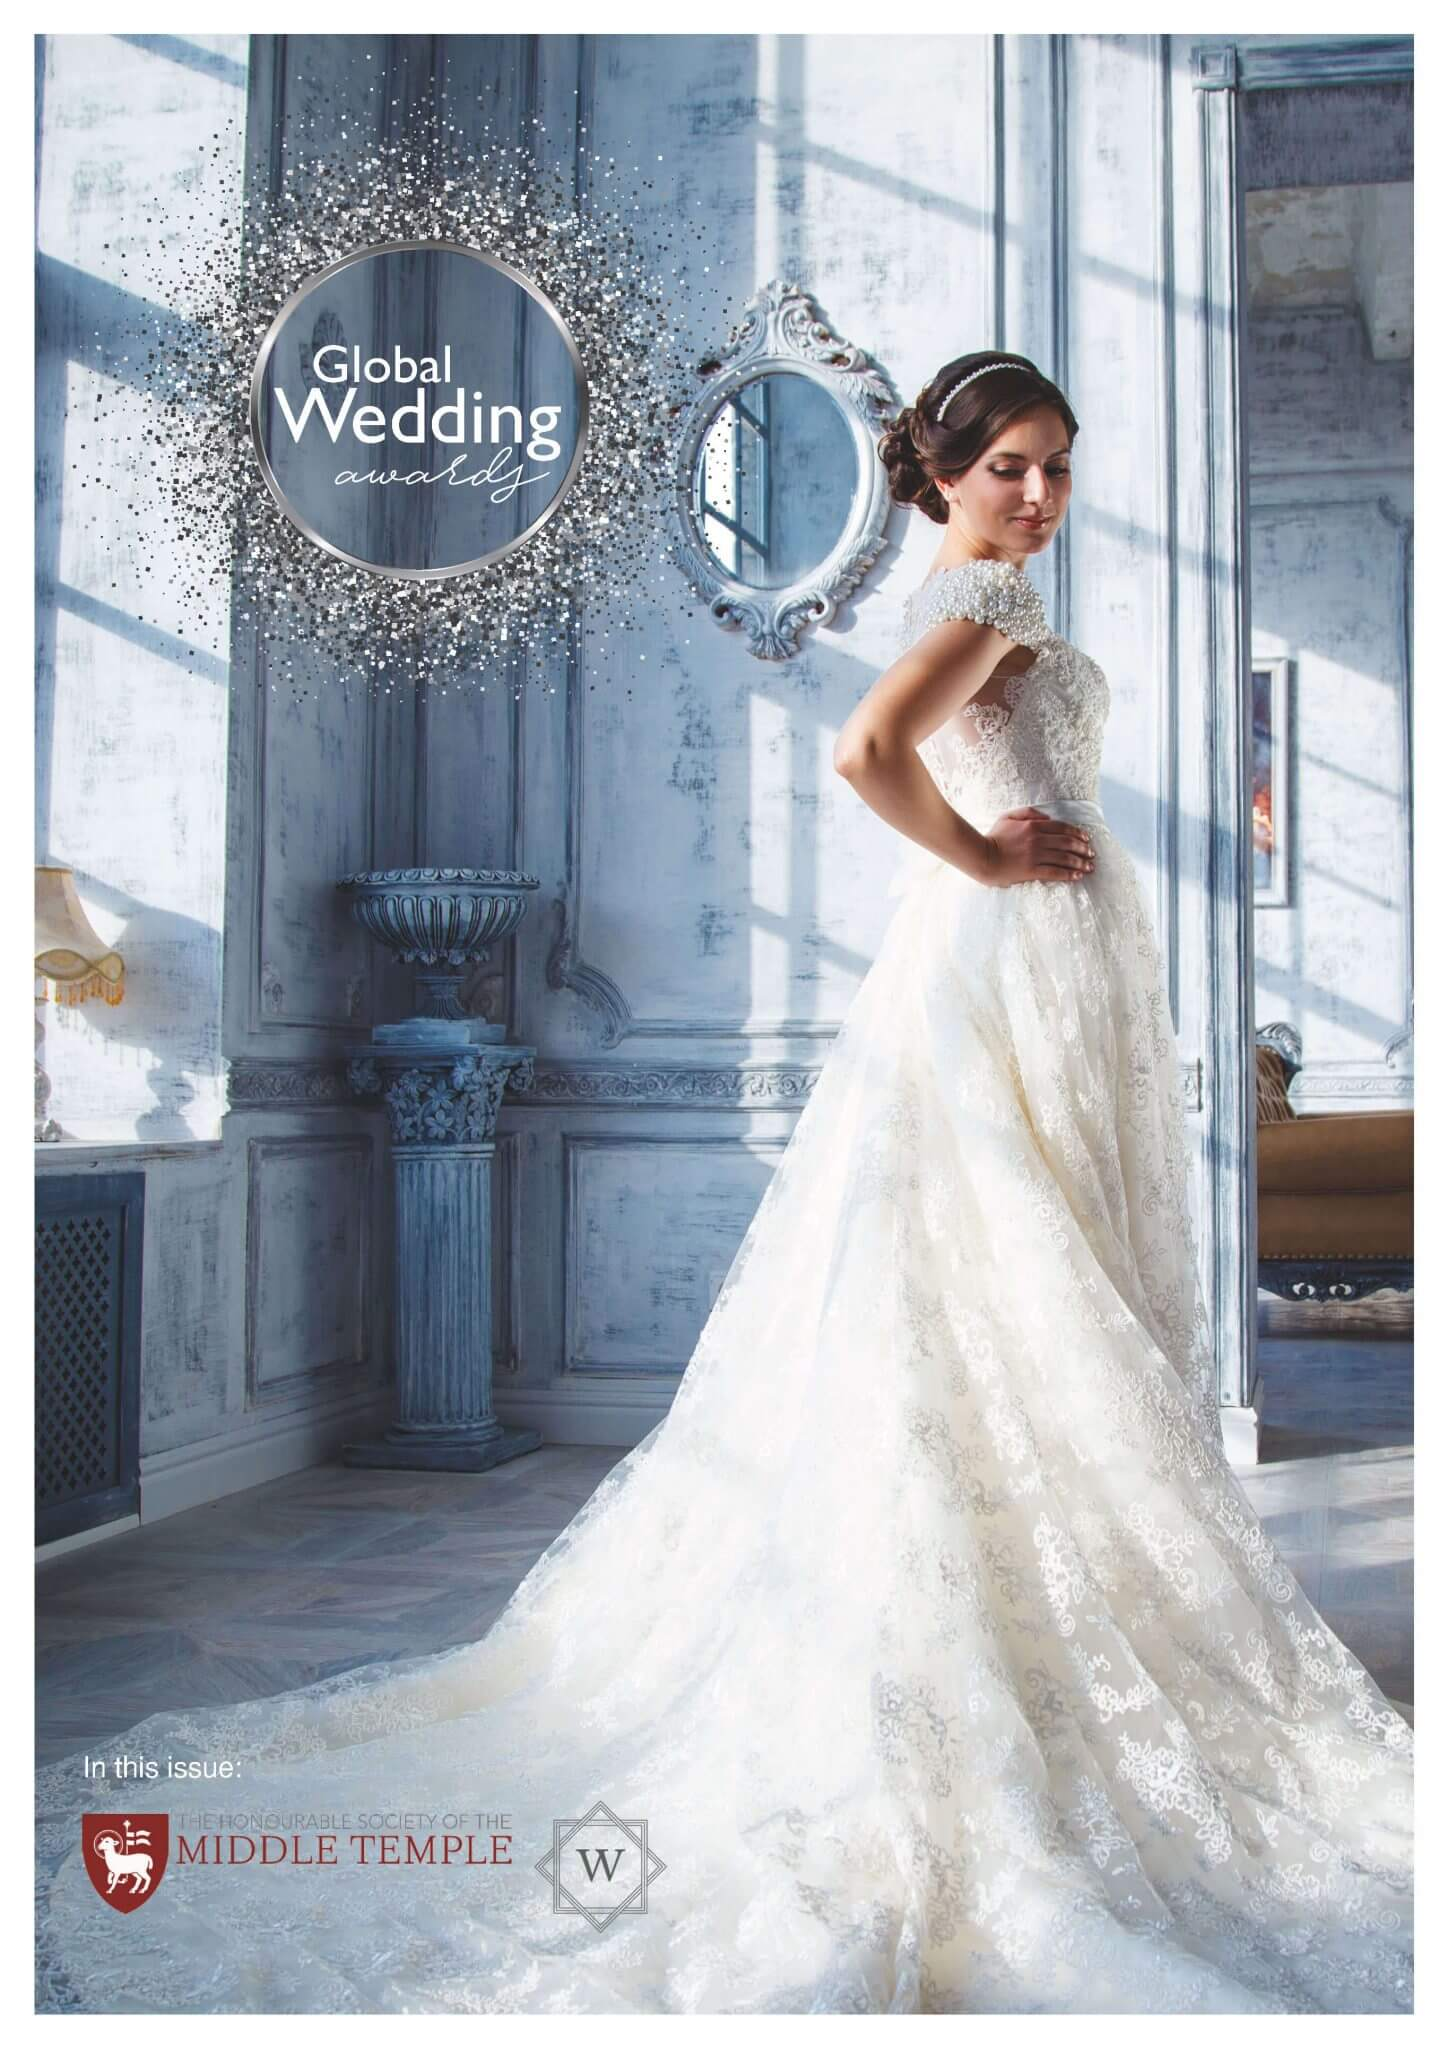 Global Wedding Awards Lux Magazine Sadiya Peach Dress Leux Studio Winners Booklet